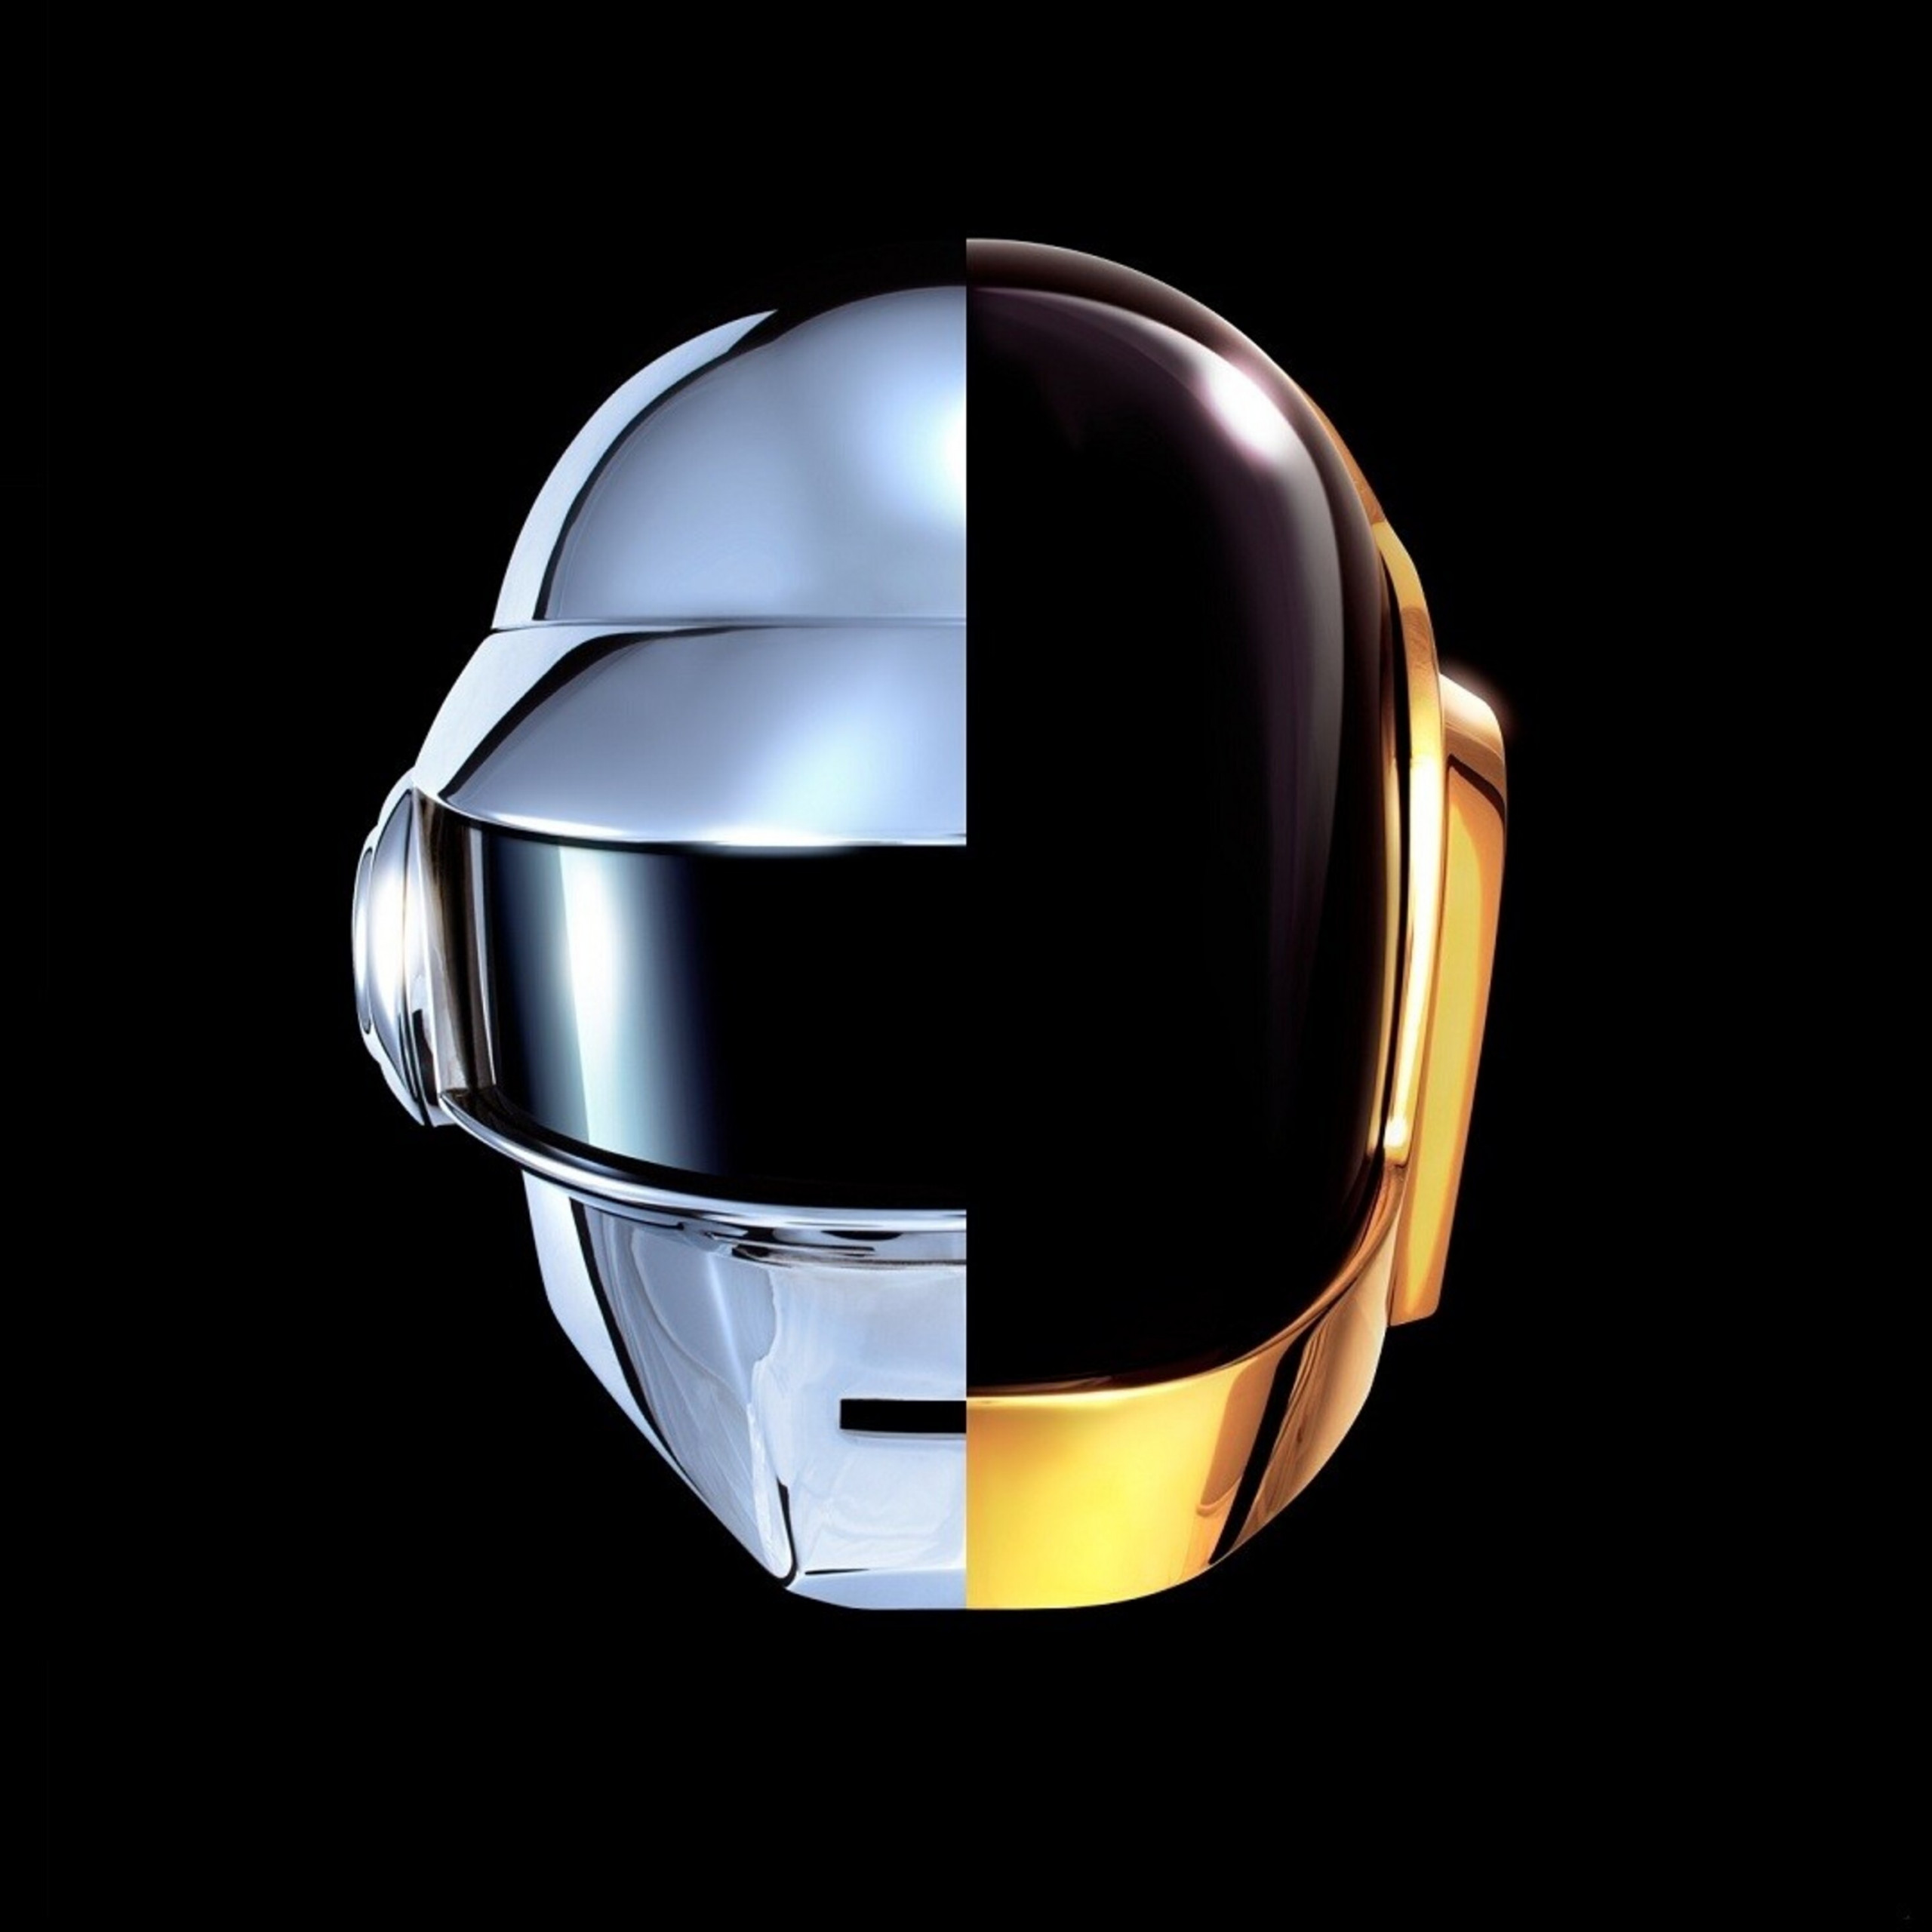 daft punk wallpaper 2932x2932